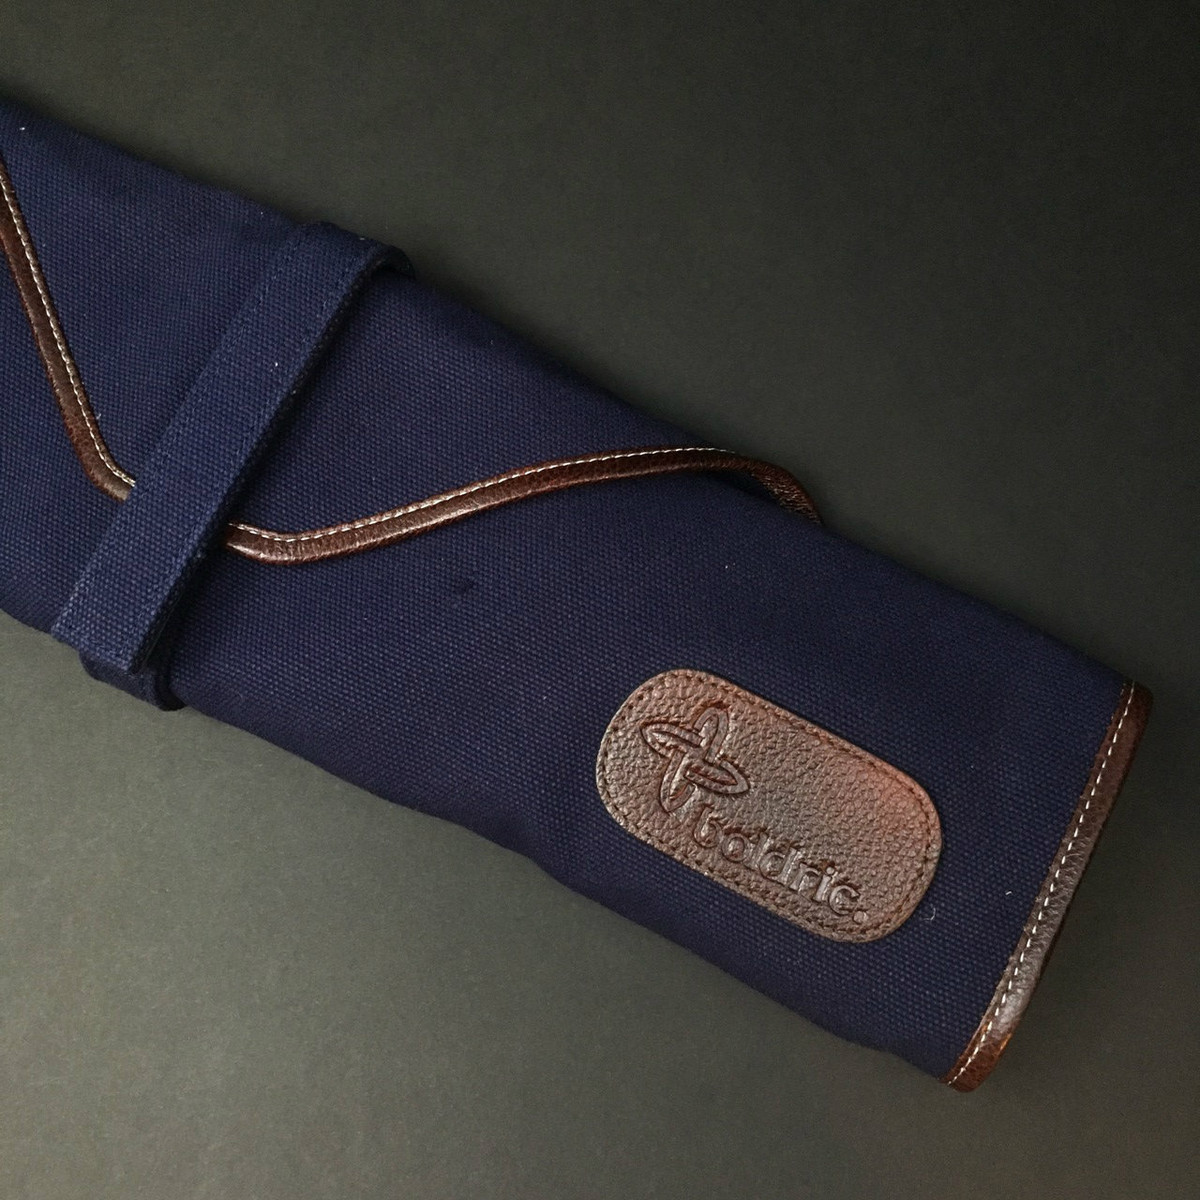 Boldric - 6 pocket - Navy